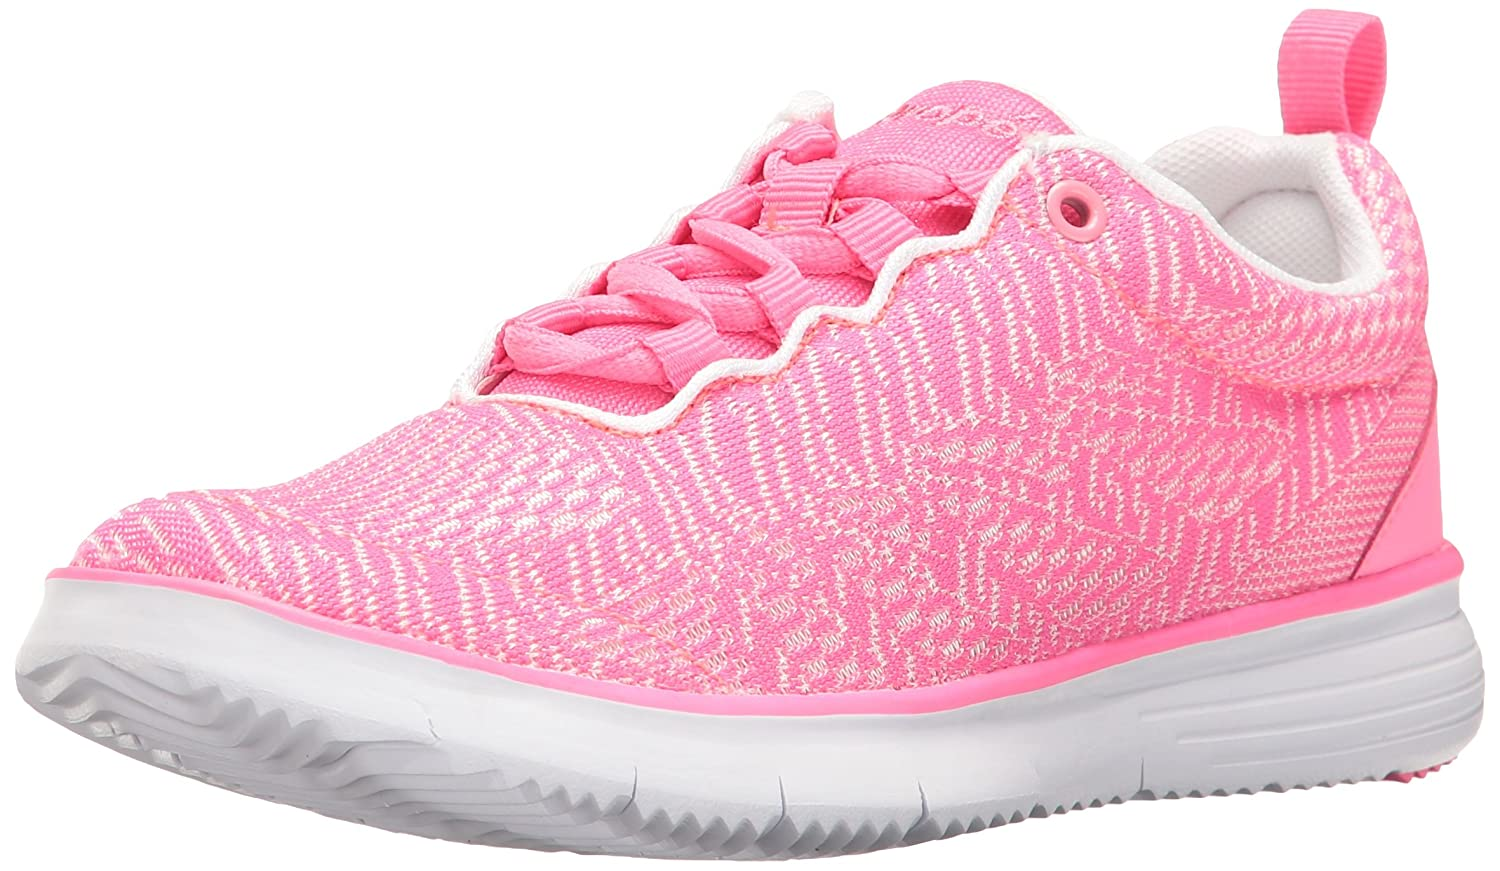 Propet Women's TravelFit Pro Walking Shoe B01KNVHGDO 9.5 4E US|Pink/White